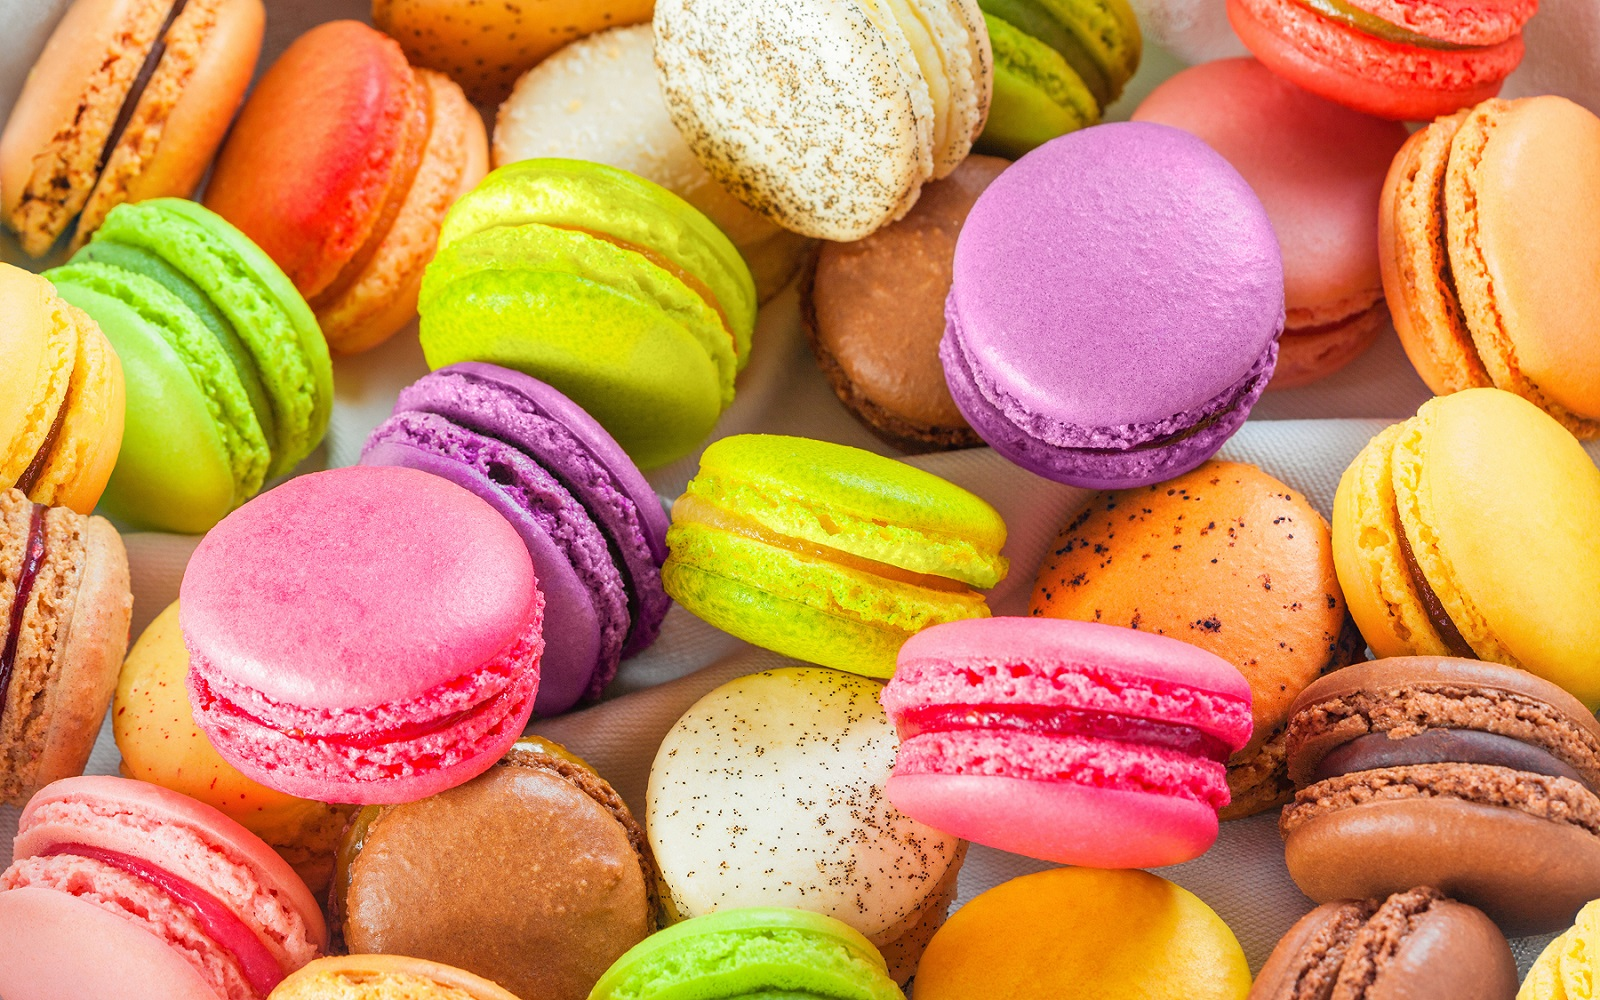 The ways to get rid of cravings for sweets are named